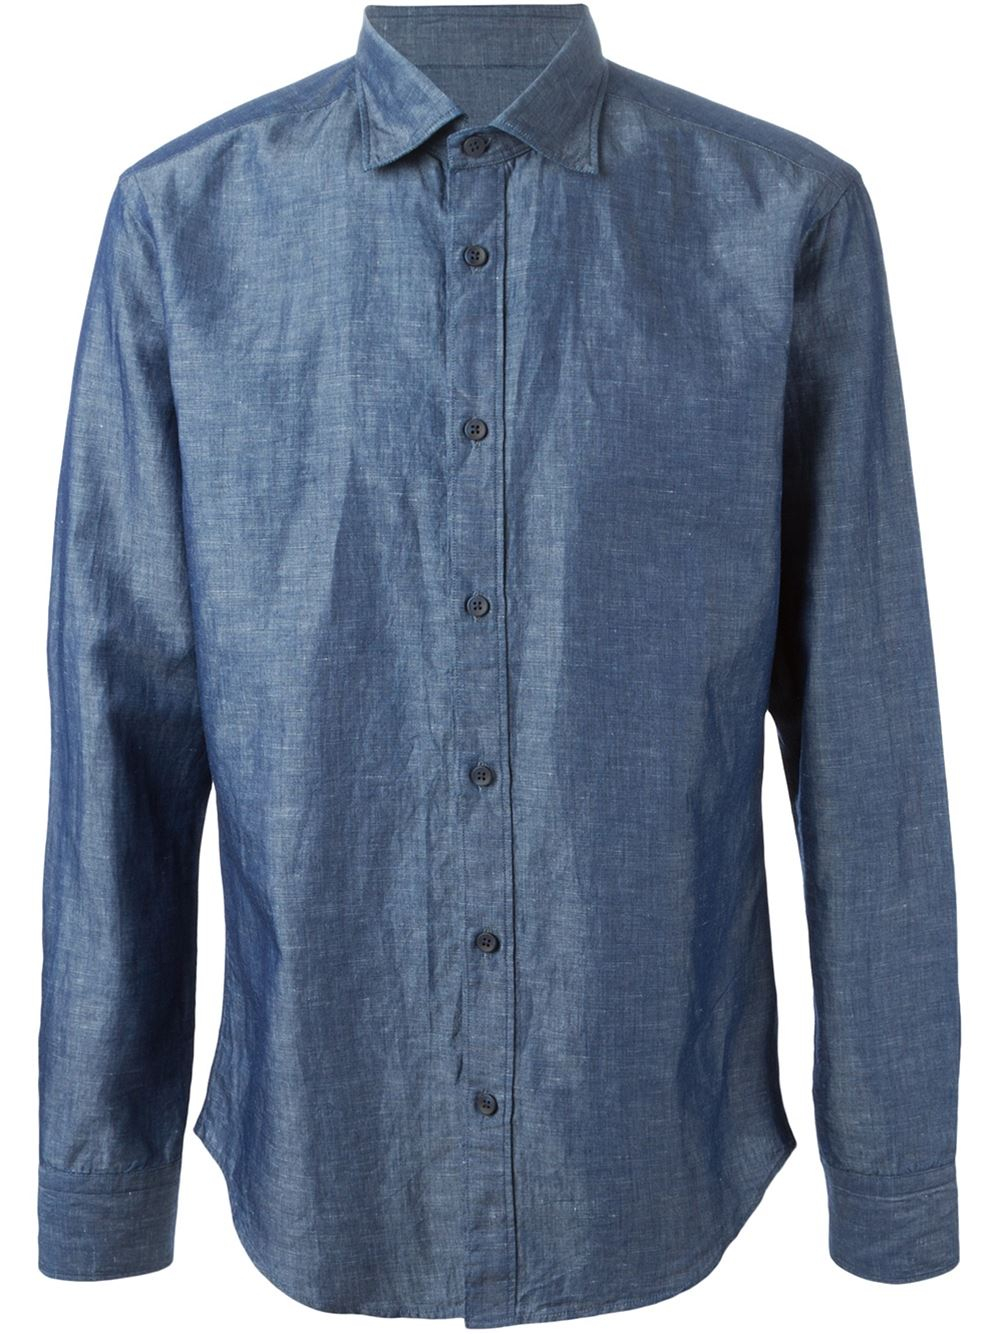 Z Zegna Classic Button Down Shirt In Blue For Men Lyst